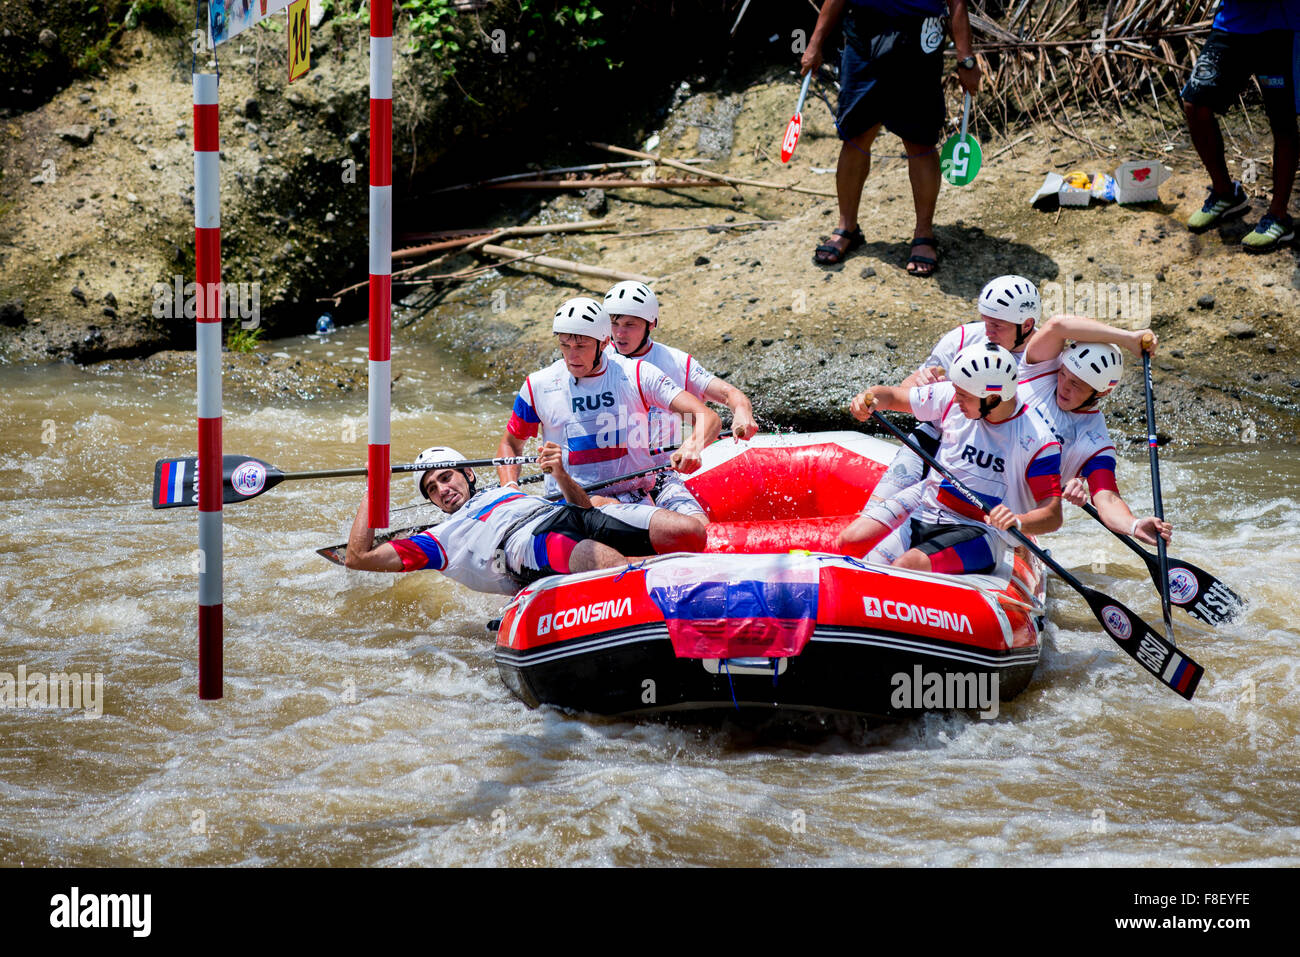 Russian U23 men's team during slalom race category on 2015 World Rafting Championship. - Stock Image